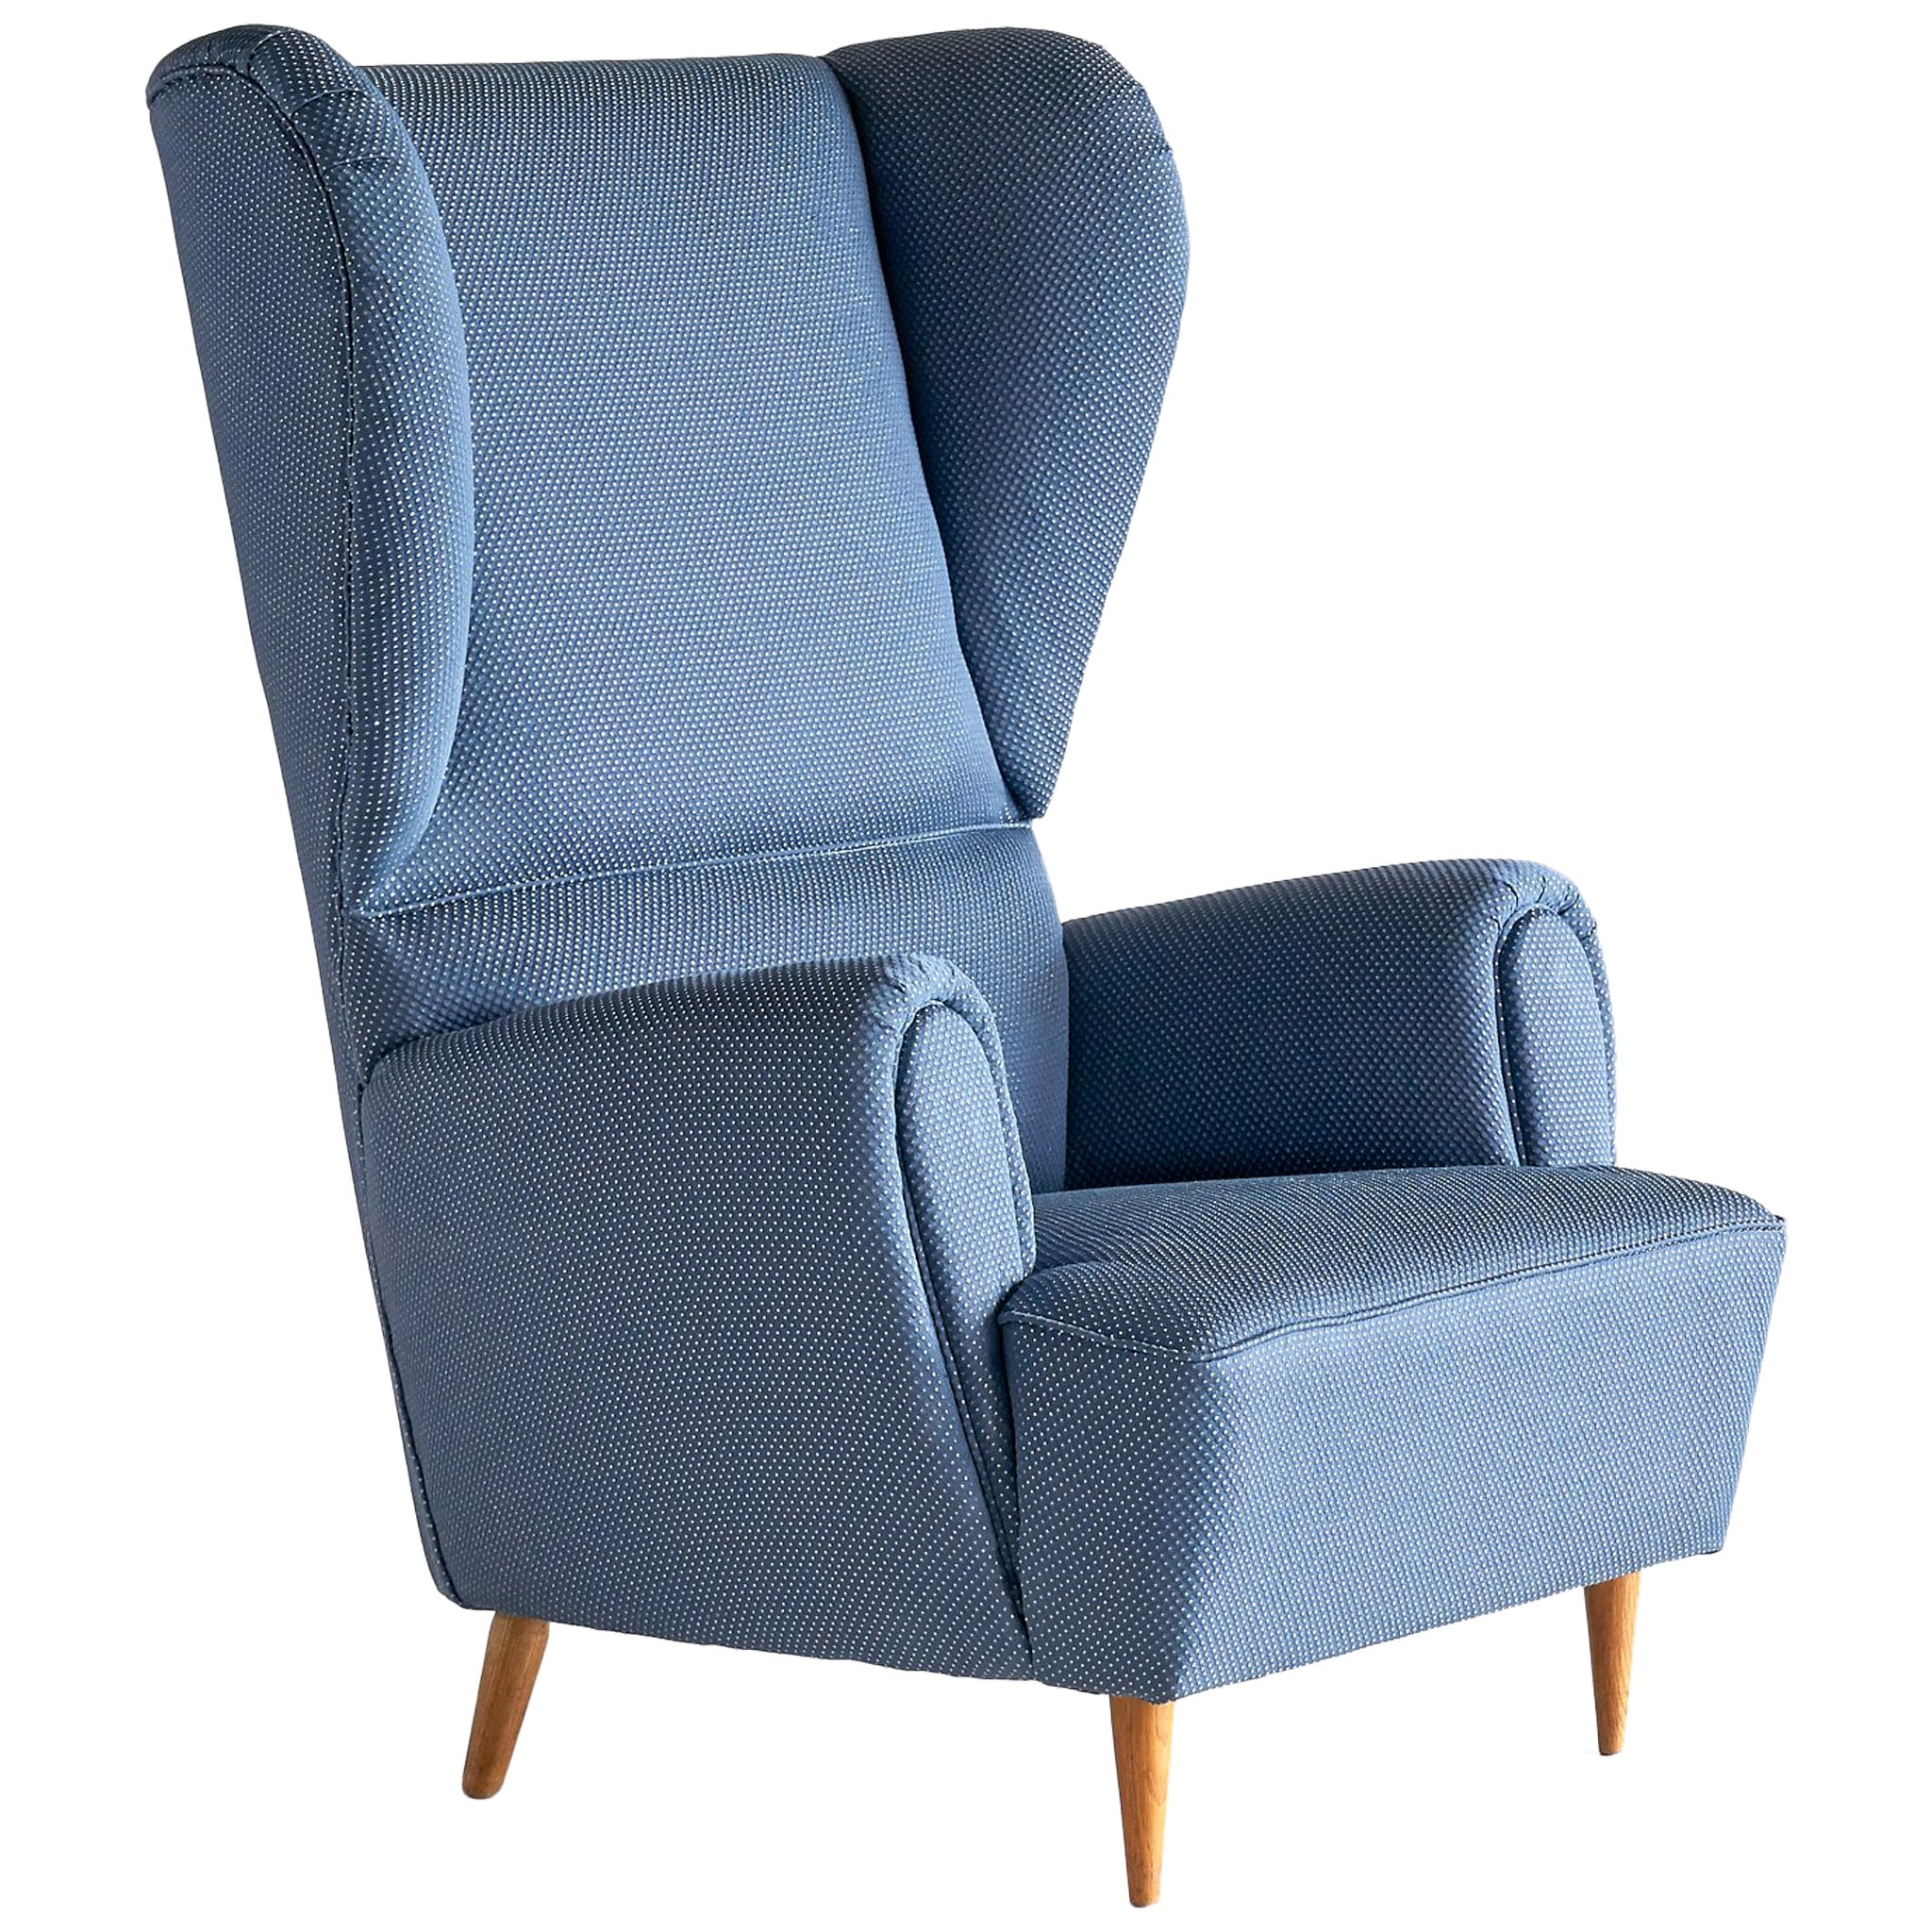 Teal Wingback Chair 1940s Paolo Buffa Wingback Chair Newly Upholstered In Rubelli Fabric